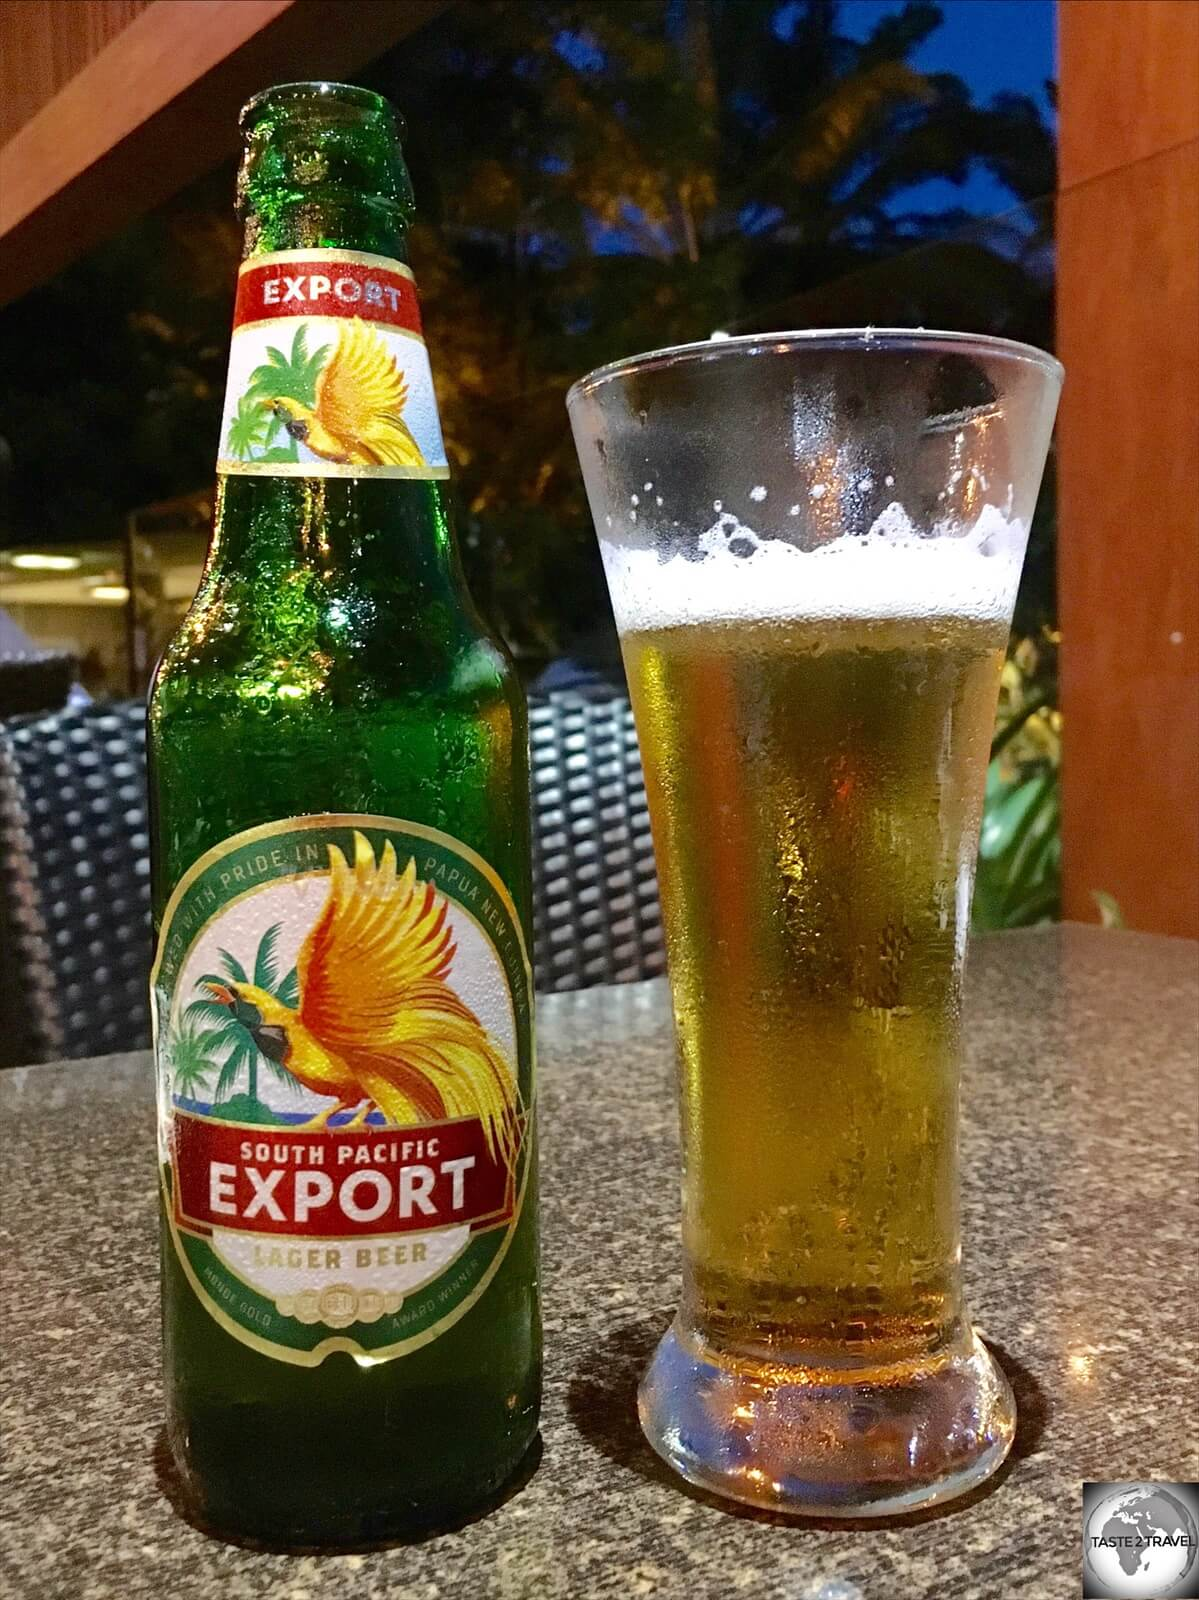 'SP Export' was my preferred beer in PNG, being a little smoother in taste than SP Lager.